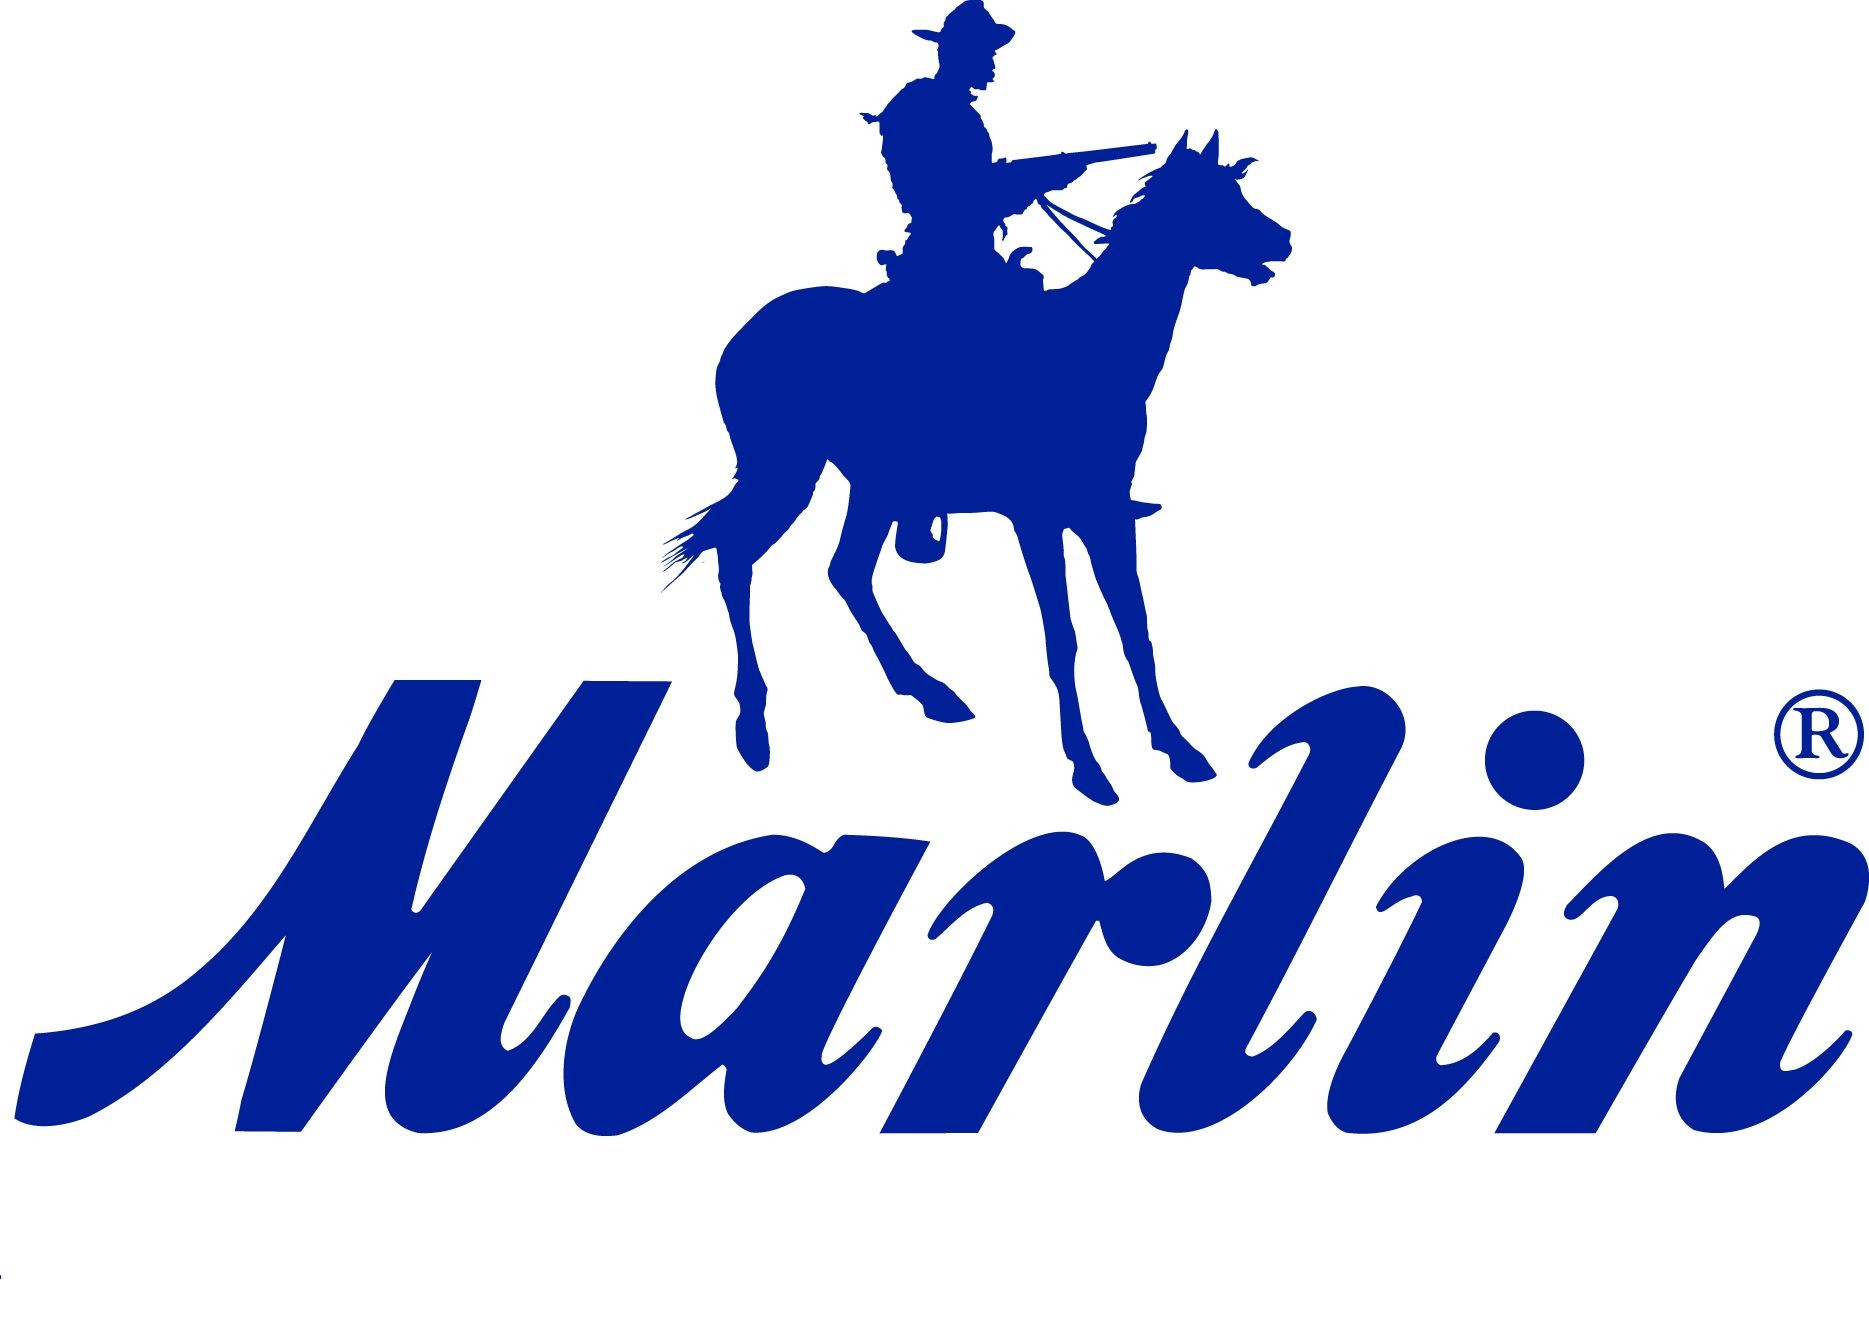 marlin logo marlinlogovertbluejpg gun sites